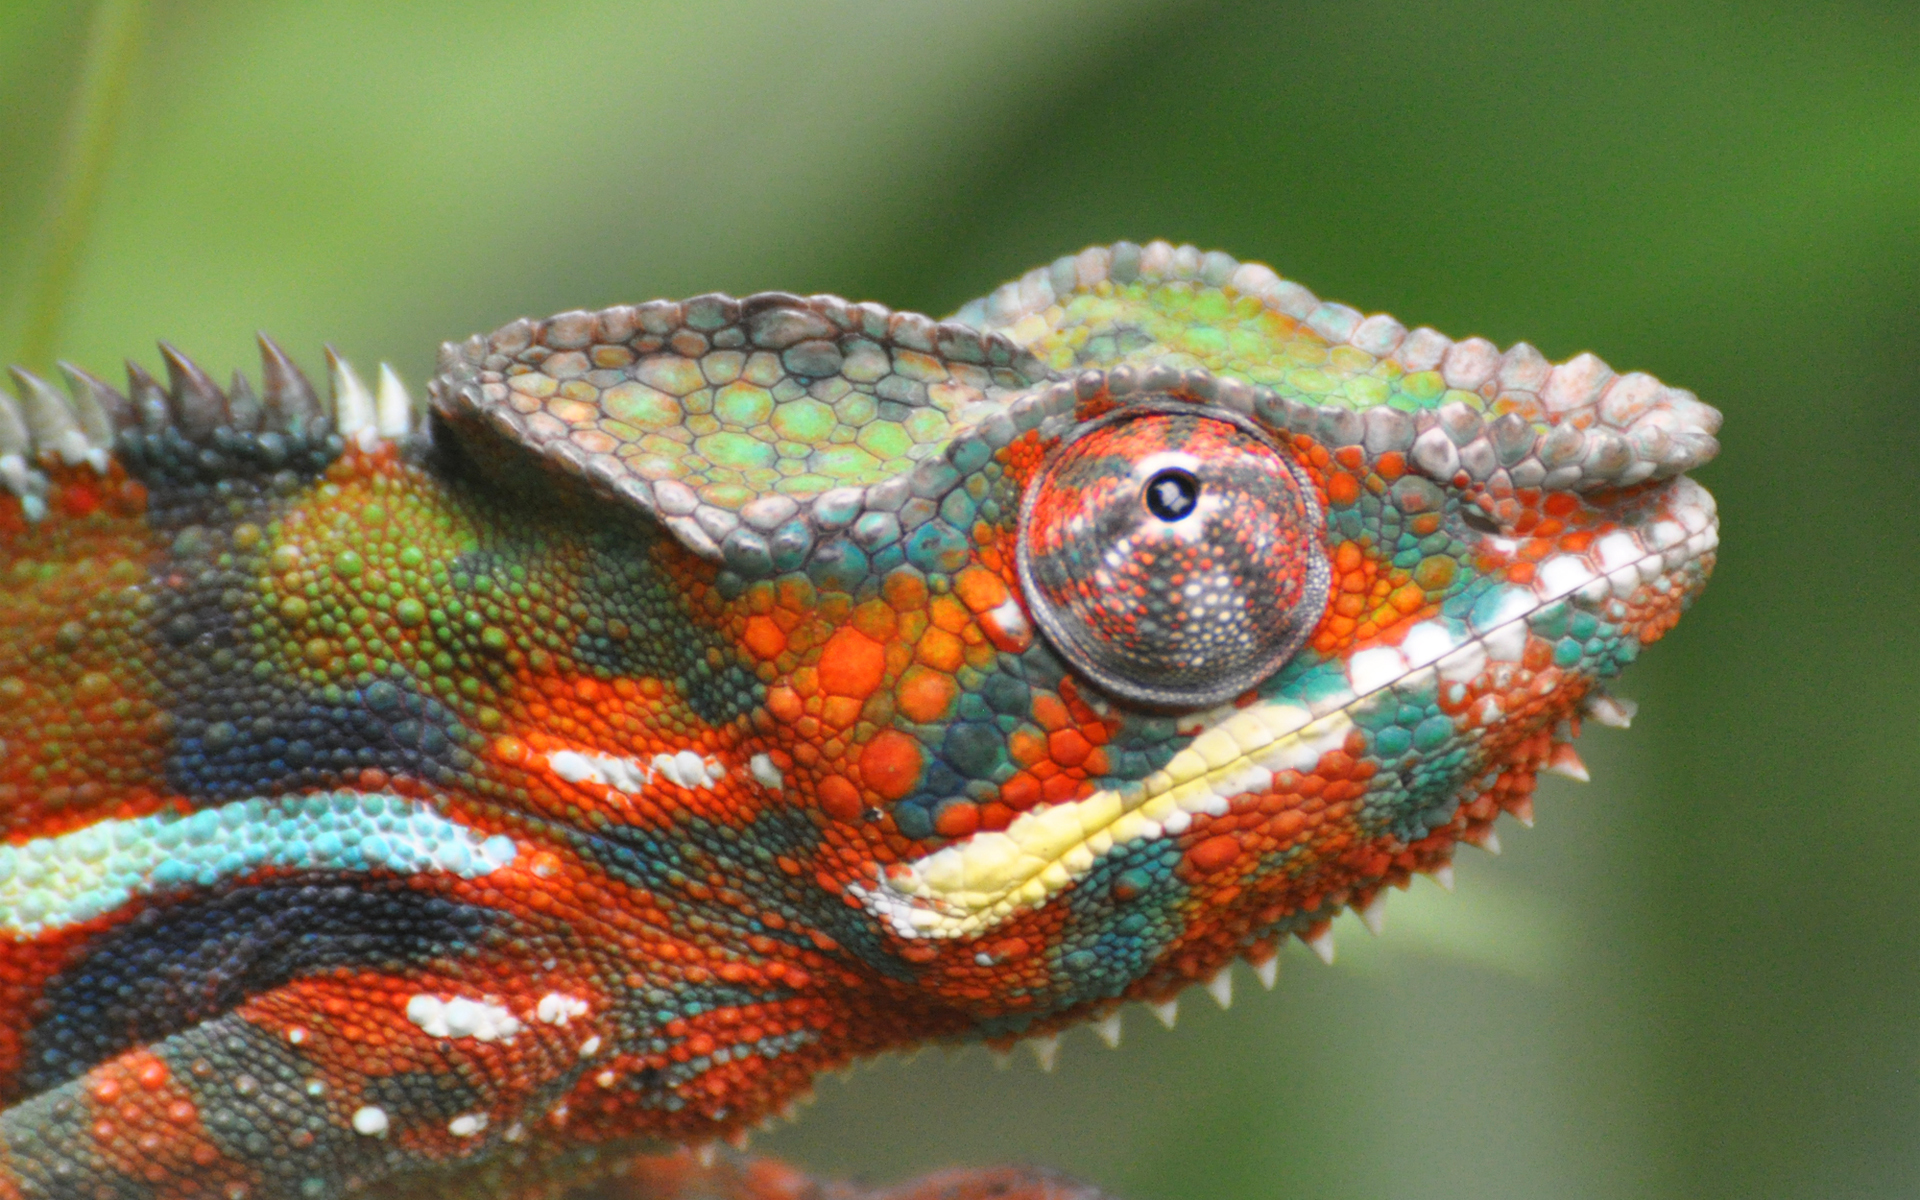 Cool Iphone X Wallpapers Live Chameleon Hd Wallpaper Background Image 1920x1200 Id